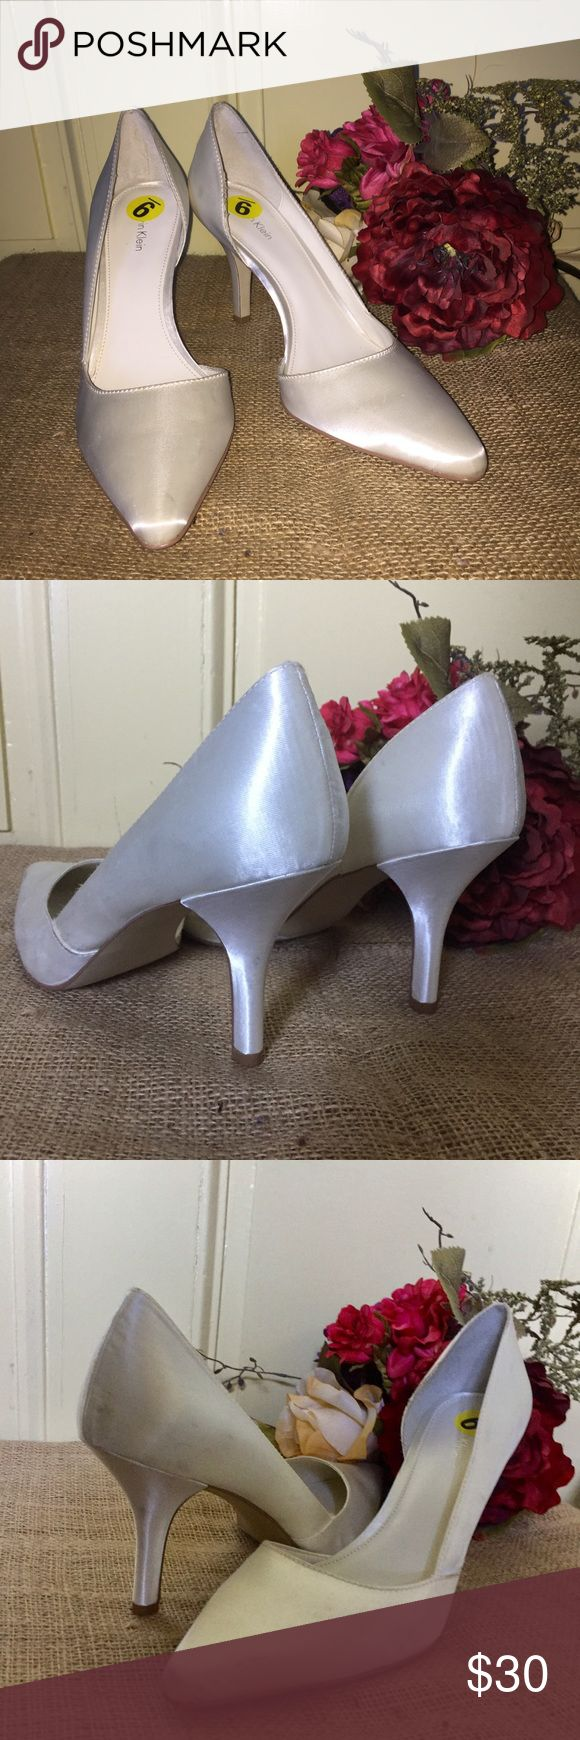 """NWT Calvin Klein bridal white satin heels. SIZE 9 NWT Calvin Klein bridal white satin heels. SIZE 9. 3.5"""" heel. Elegant pointed toe style and crazy comfortable.  Never worn, but a few slight scuffs from being in storage. Smoke Free Home. Calvin Klein Shoes Heels"""